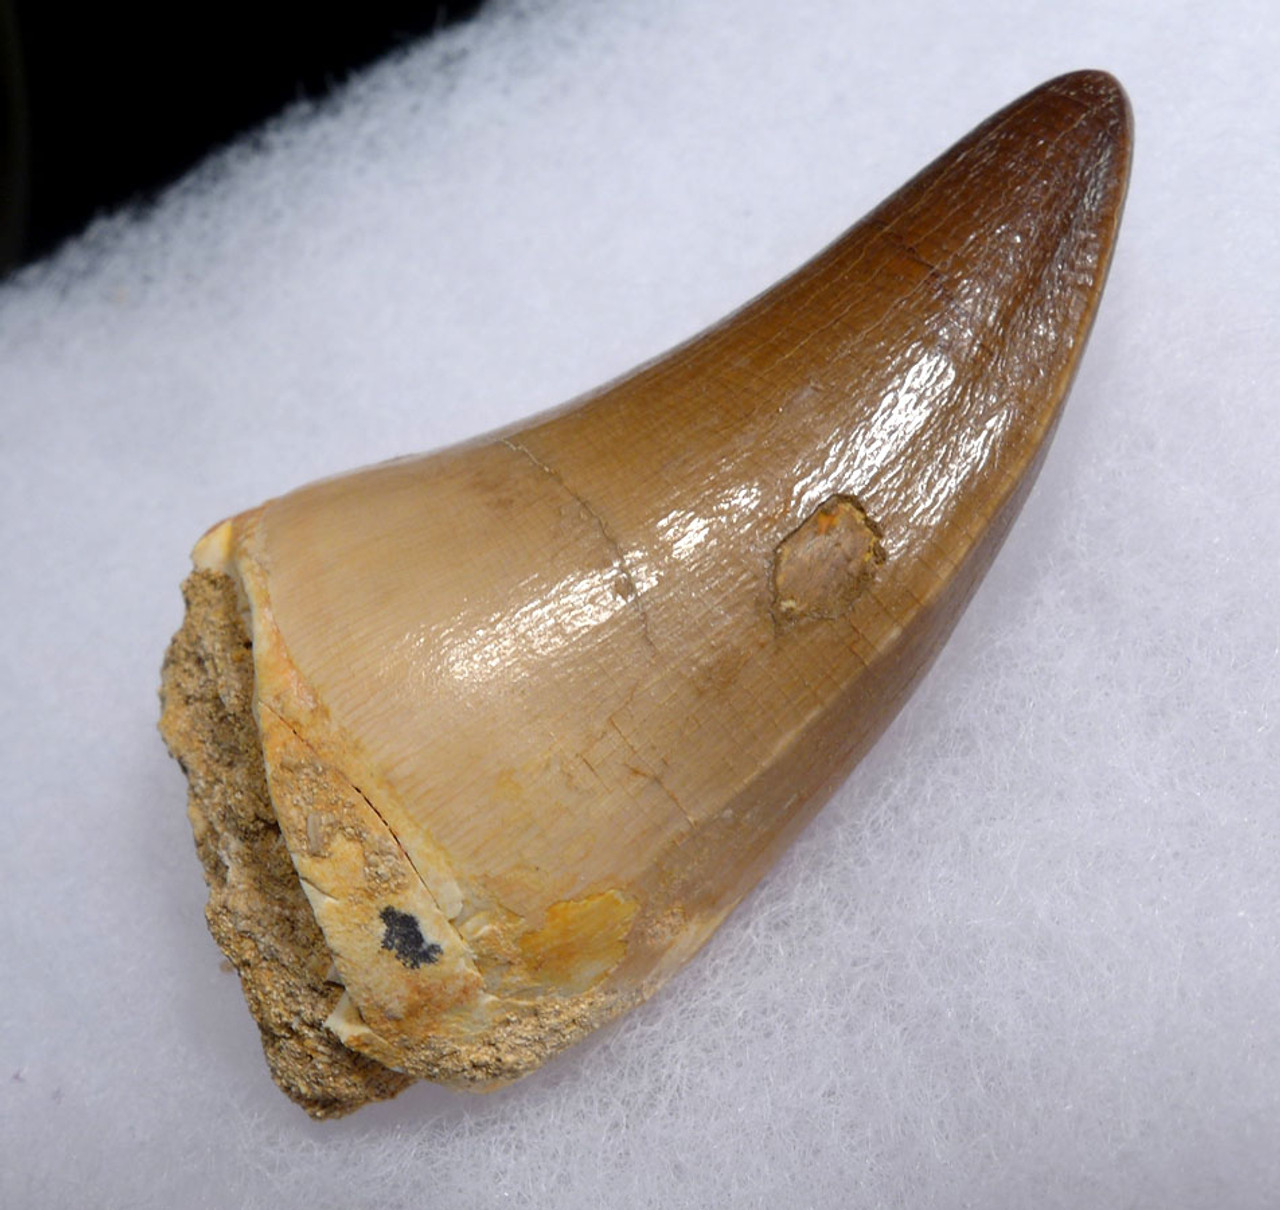 IMPRESSIVE LARGE FOSSIL TOOTH FROM A HUGE MOSASAUR MARINE REPTILE *DT1-132